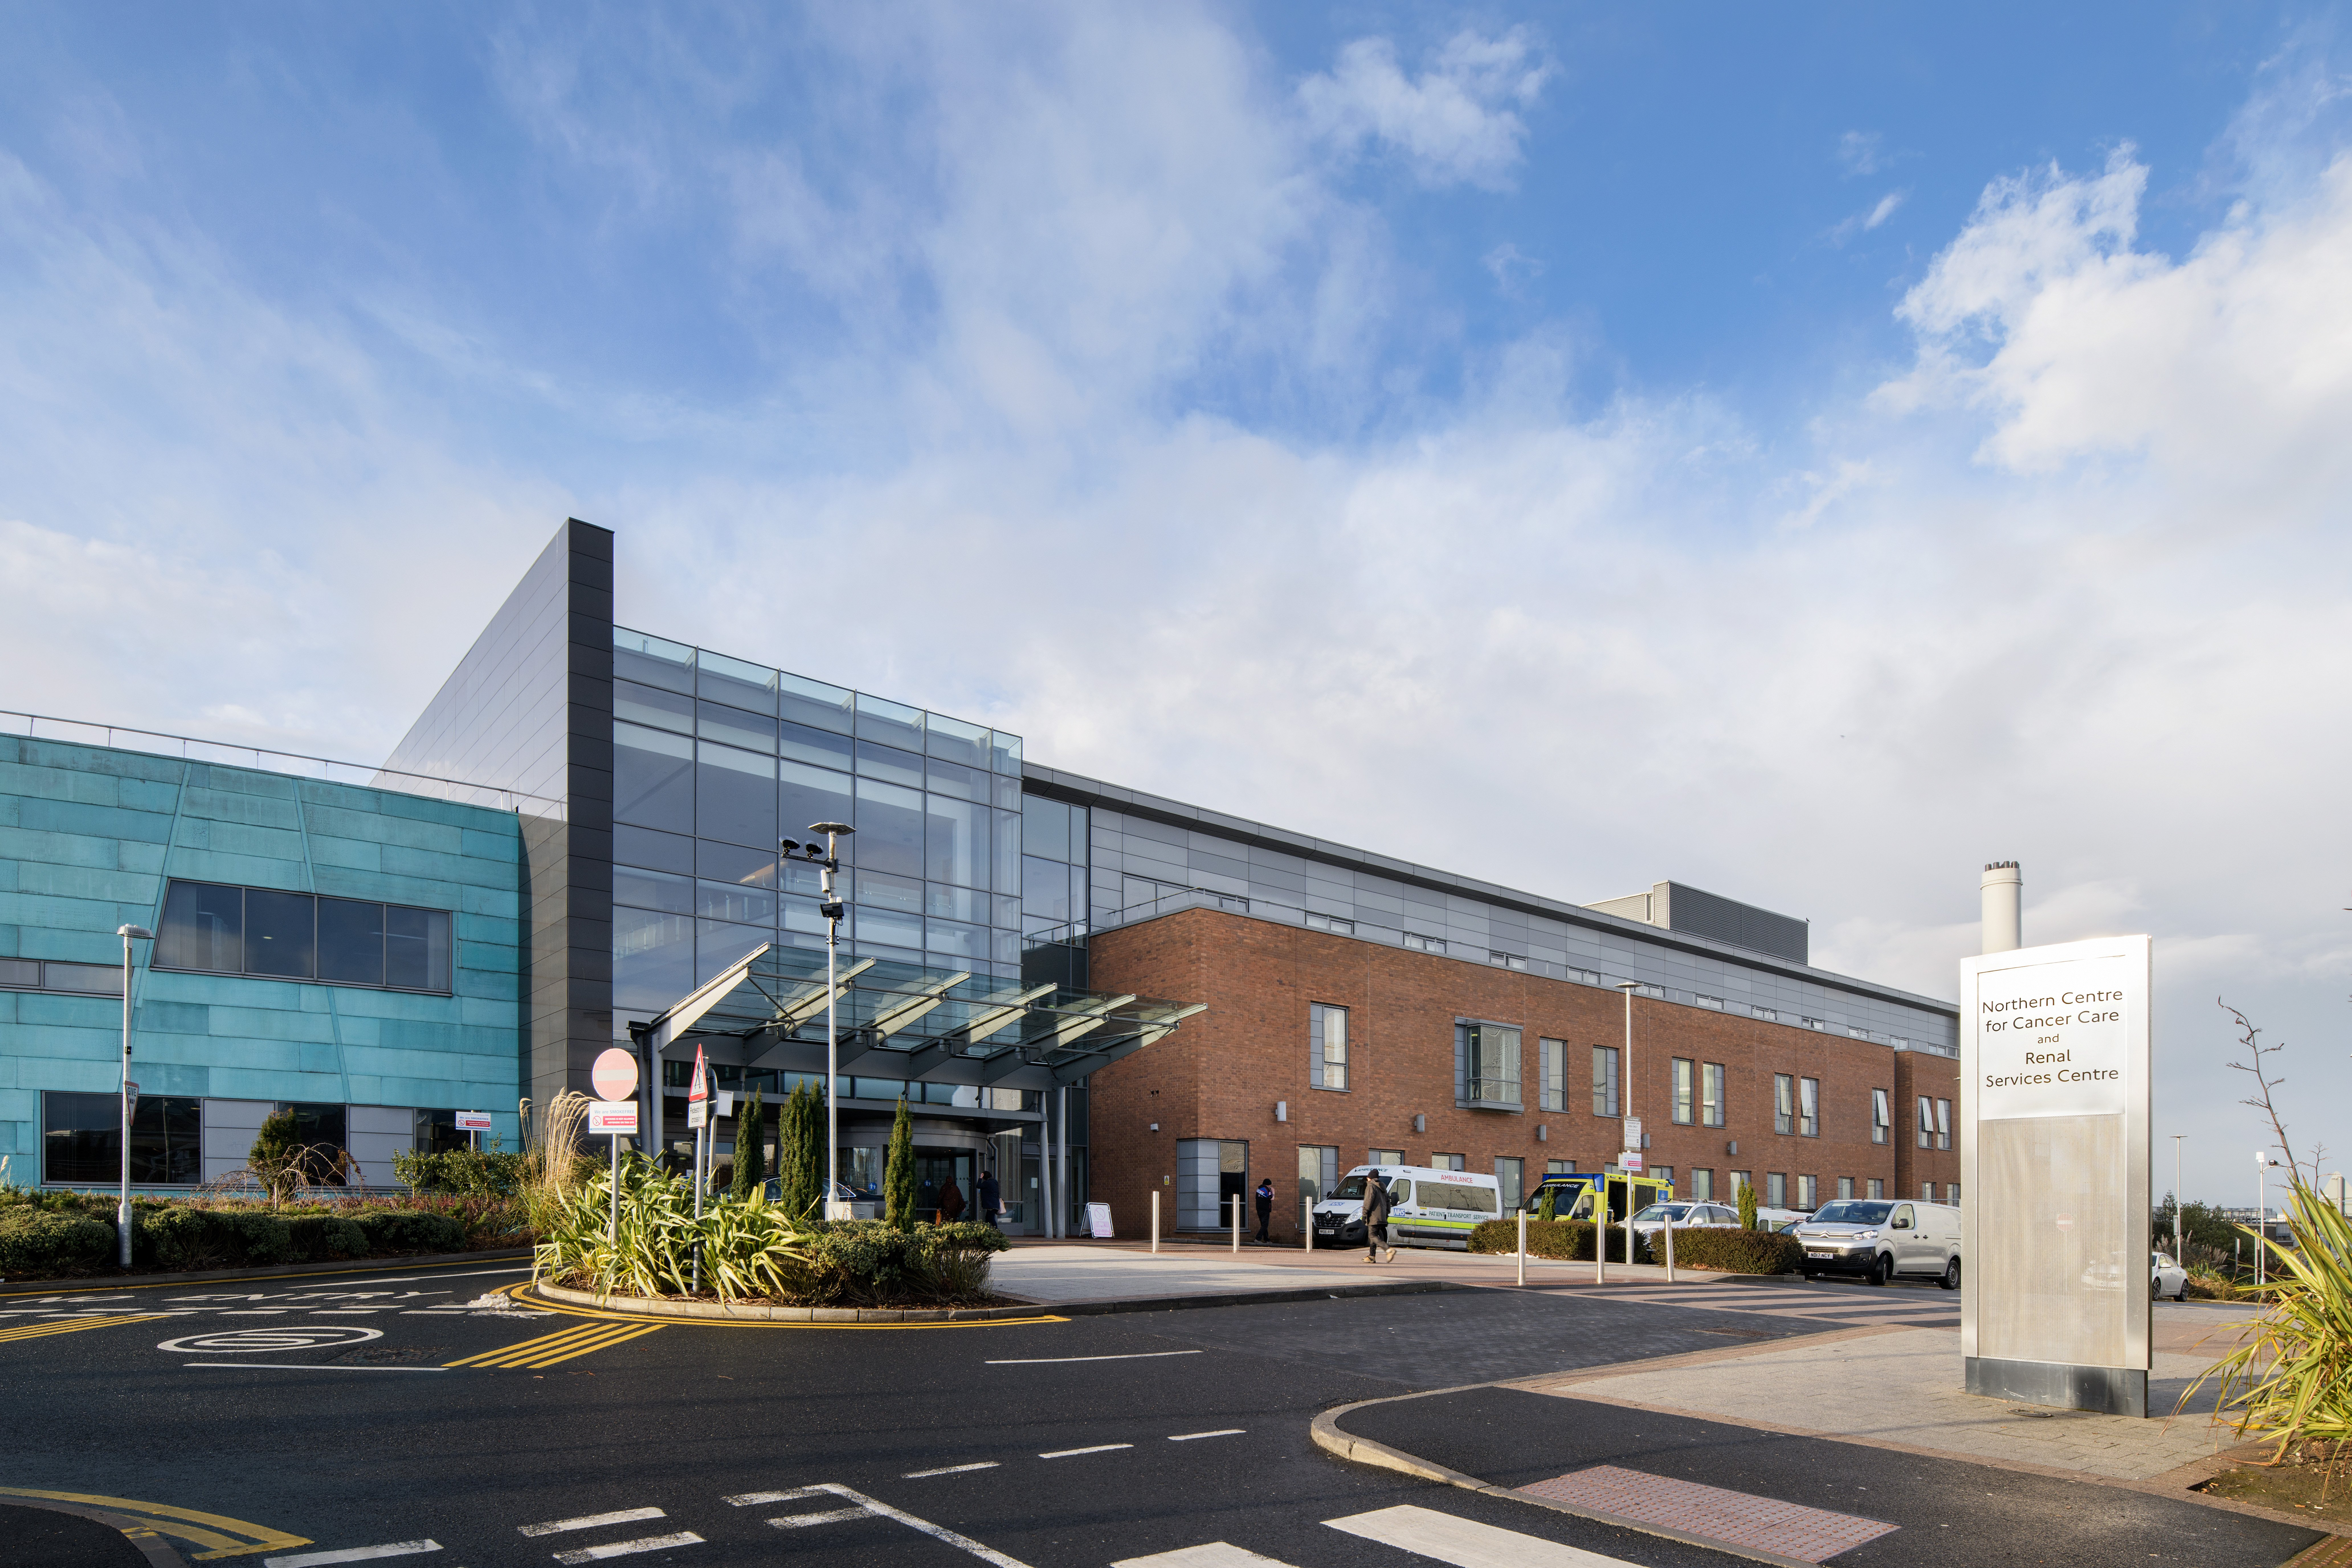 Northern Centre for Cancer Care (NCCC)